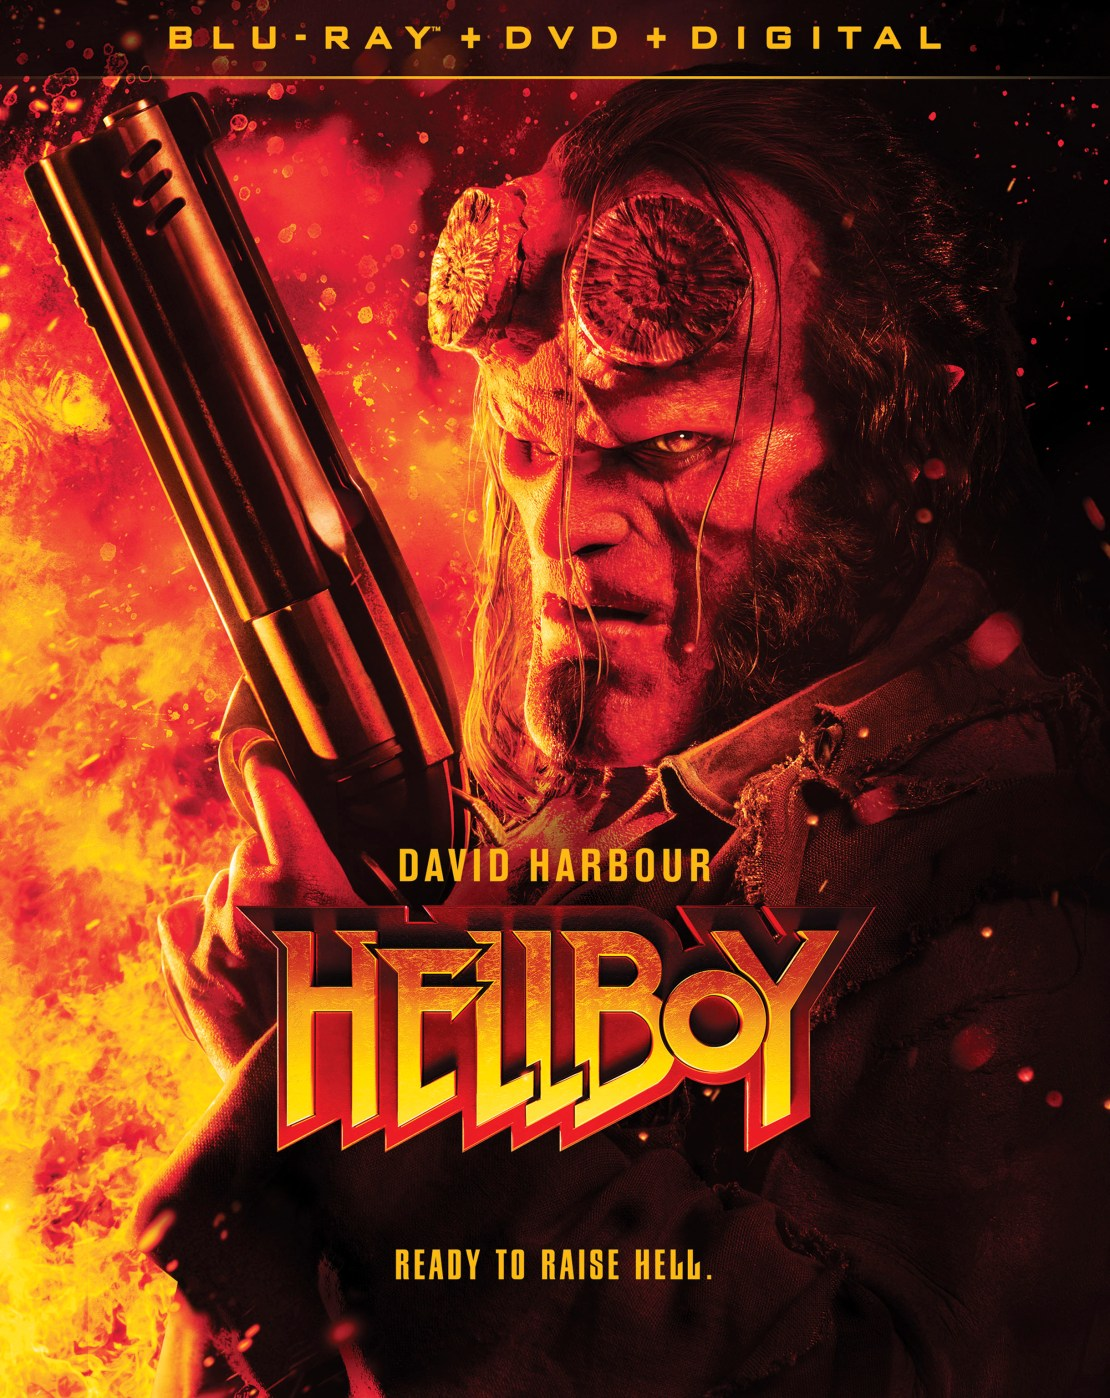 Hellboy [Includes Digital Copy] [Blu-ray/DVD] [2019]